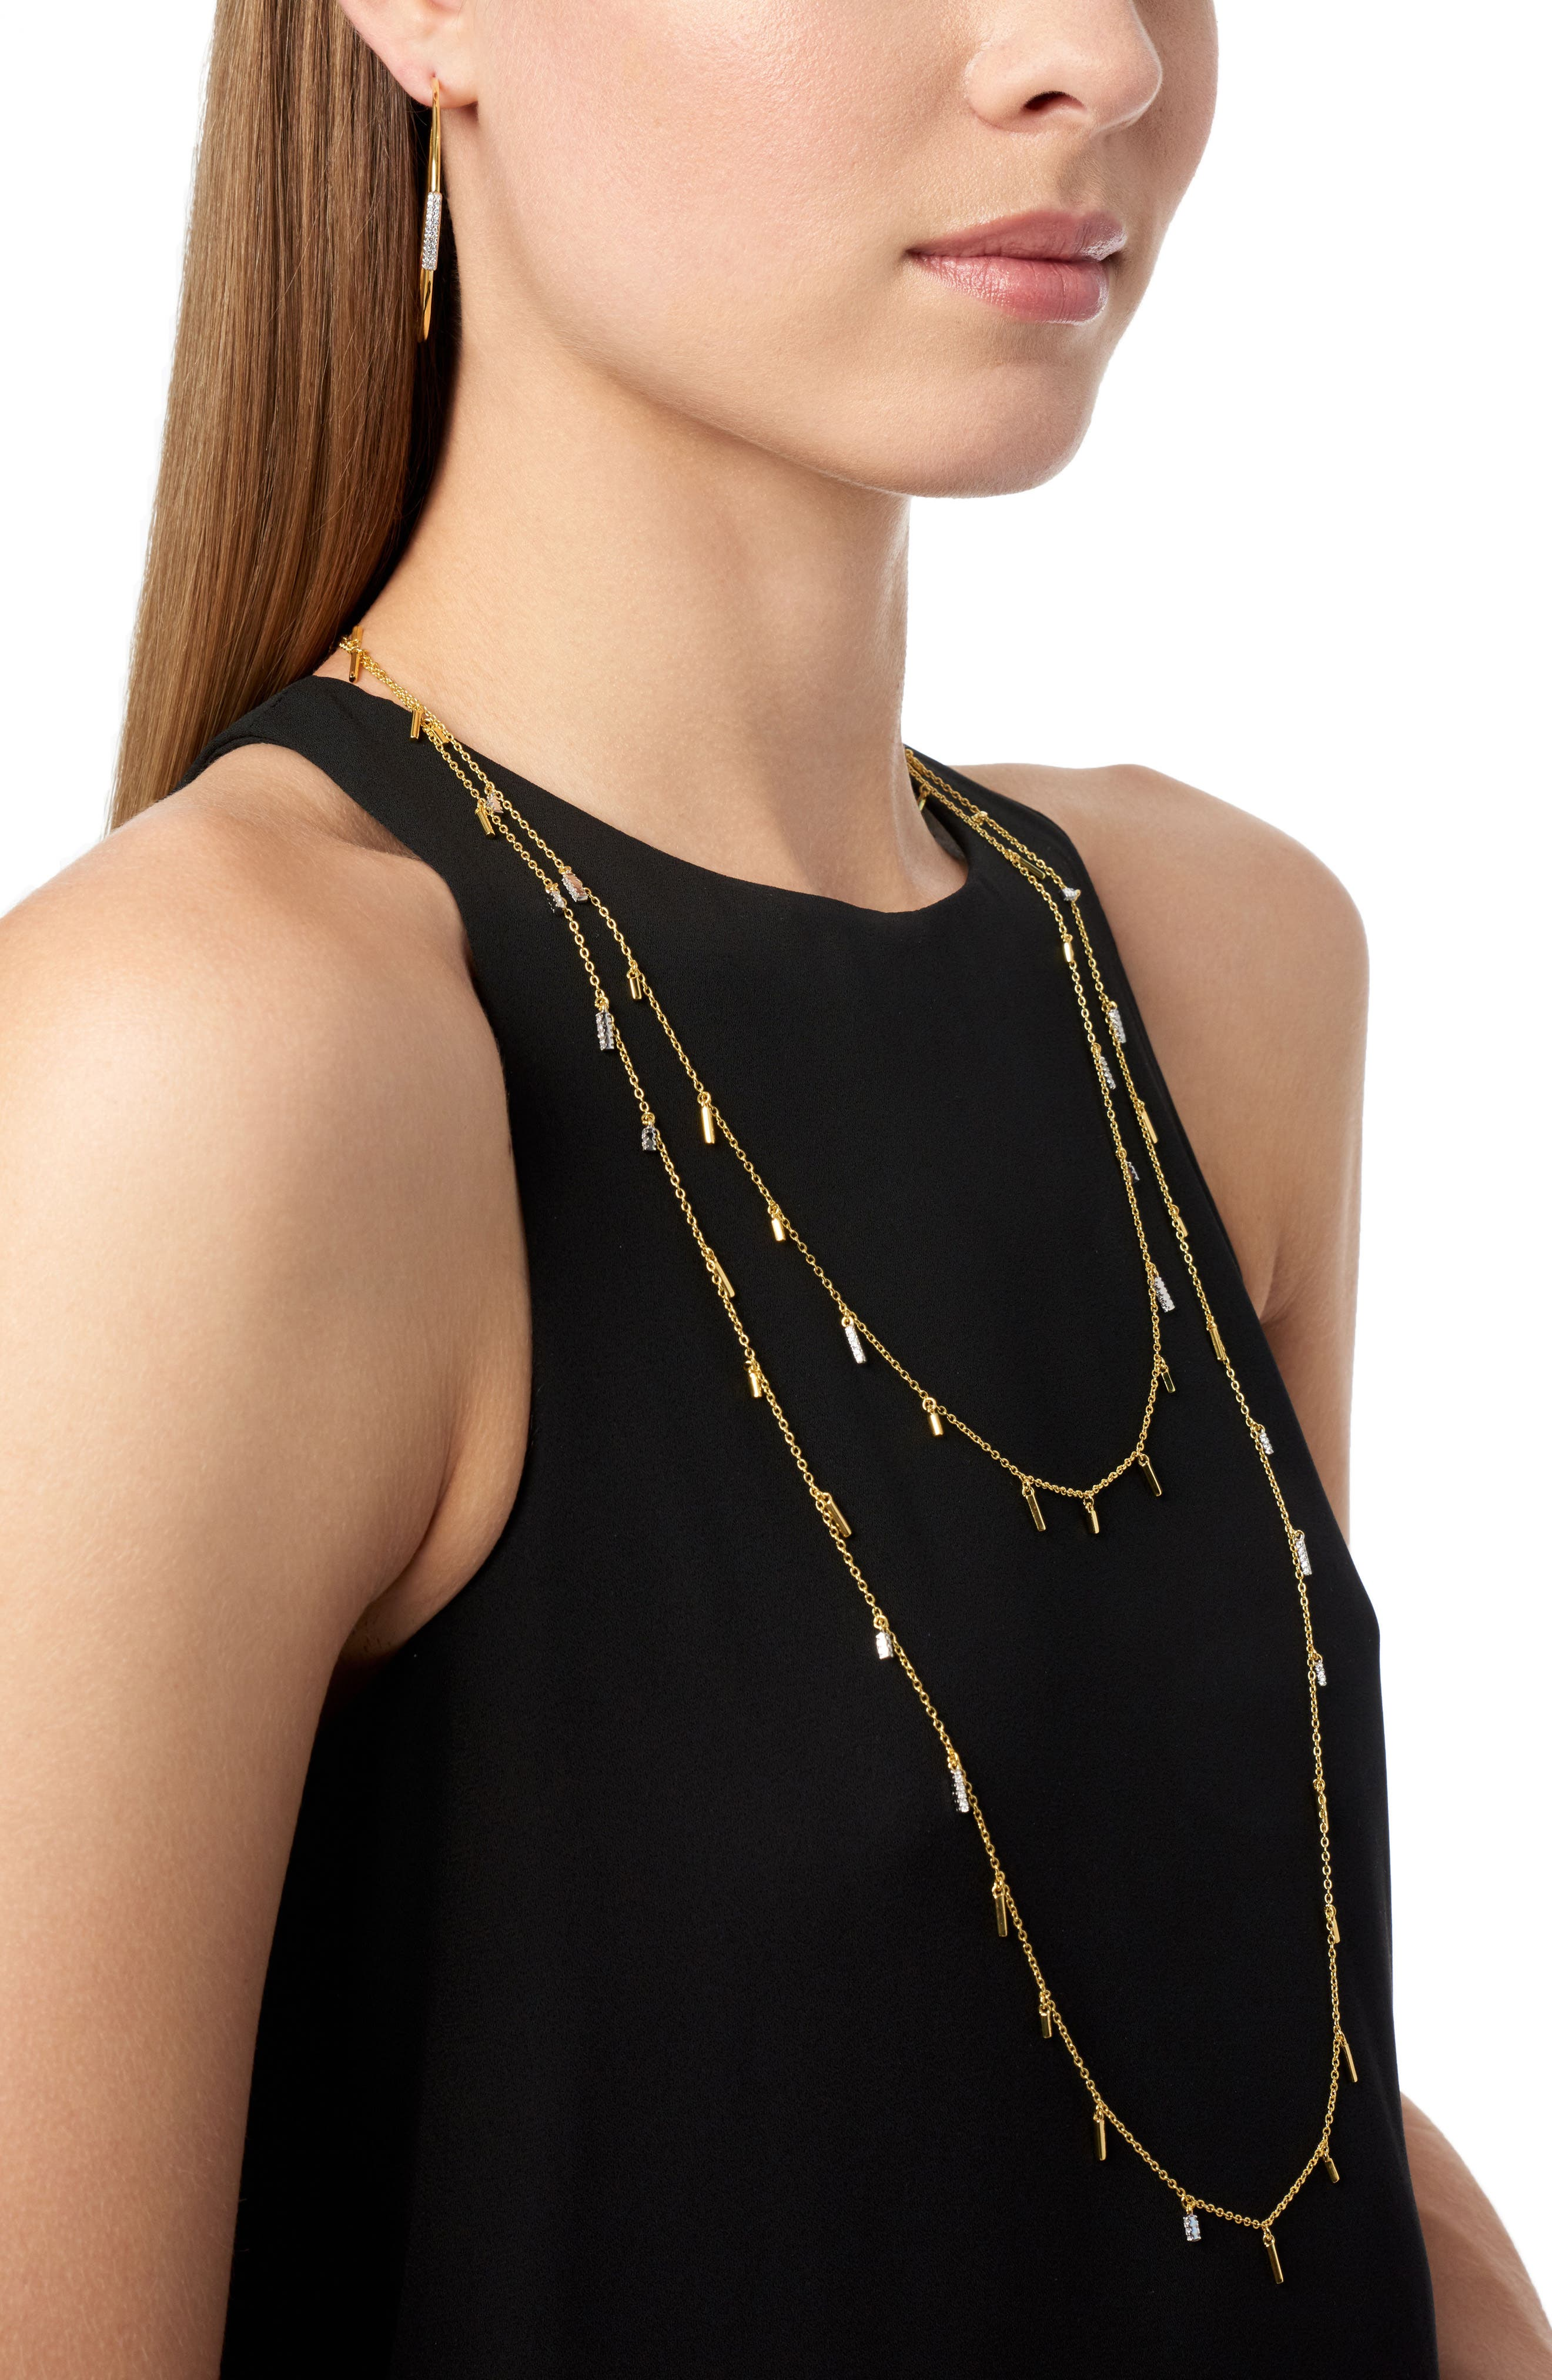 Radiance Droplet Cubic Zirconia Station Necklace,                             Alternate thumbnail 2, color,                             SILVER/ GOLD